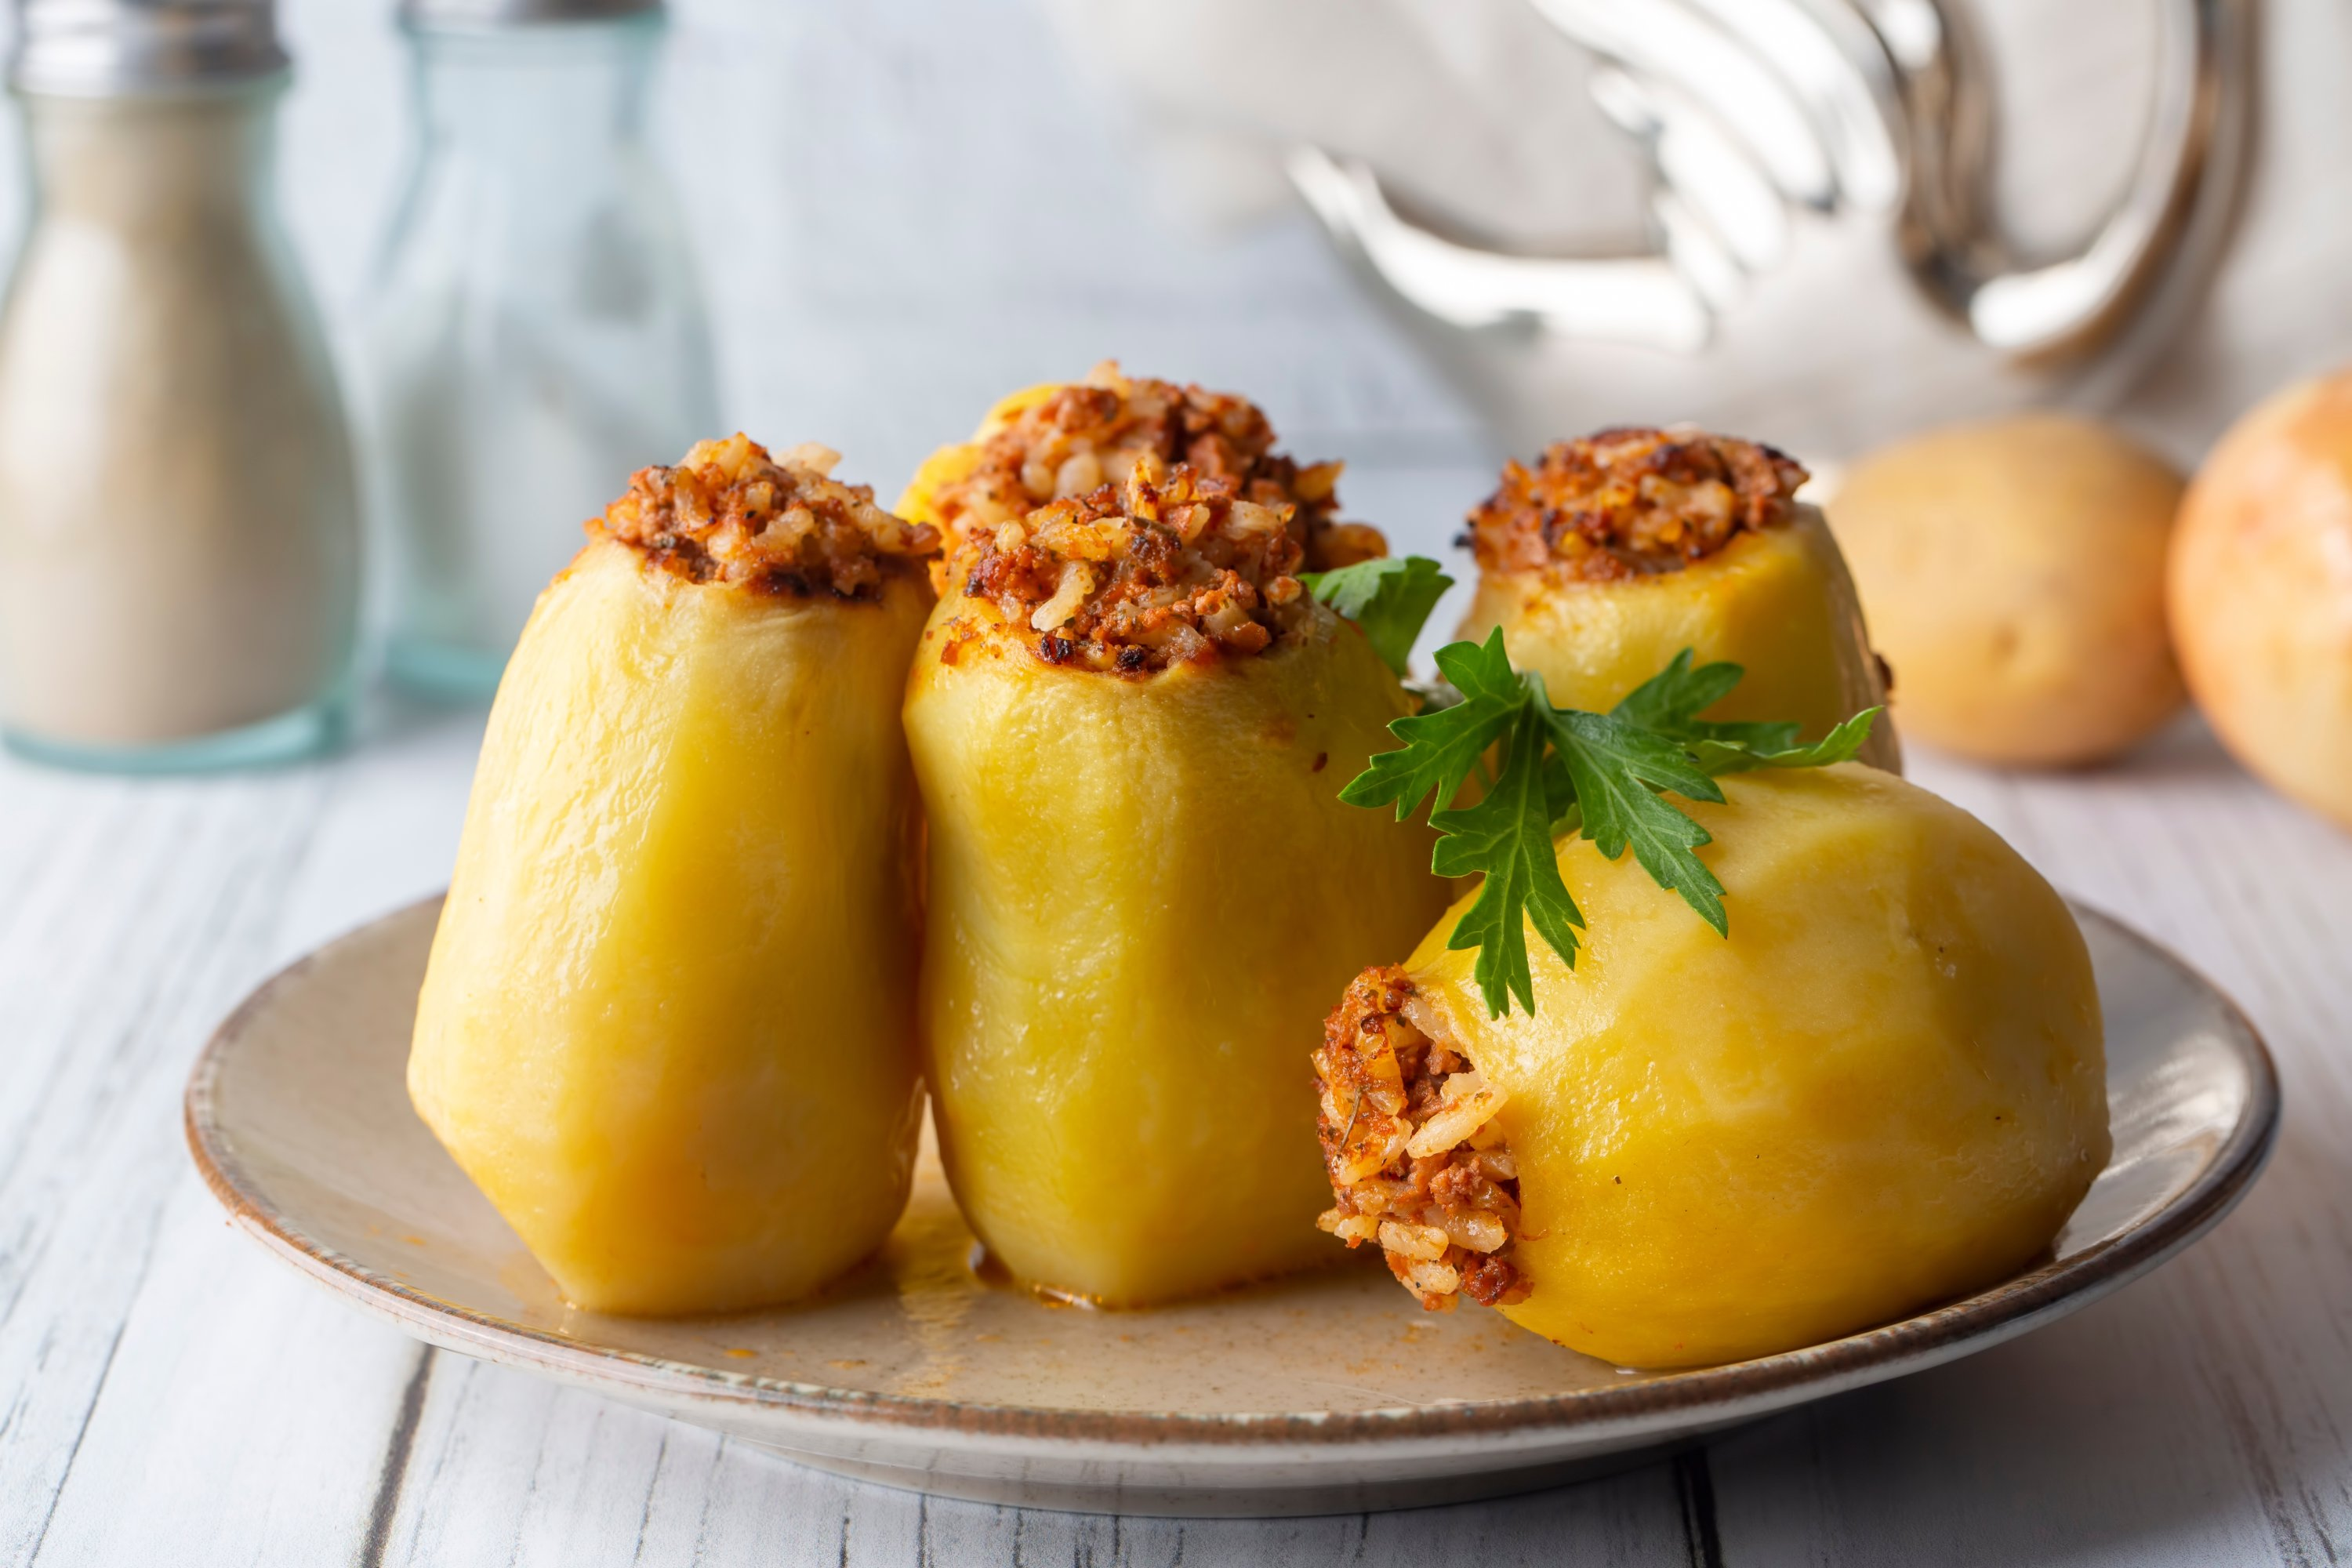 A traditional, delicious Turkish food: stuffed potatoes. (Shutterstock Photo)